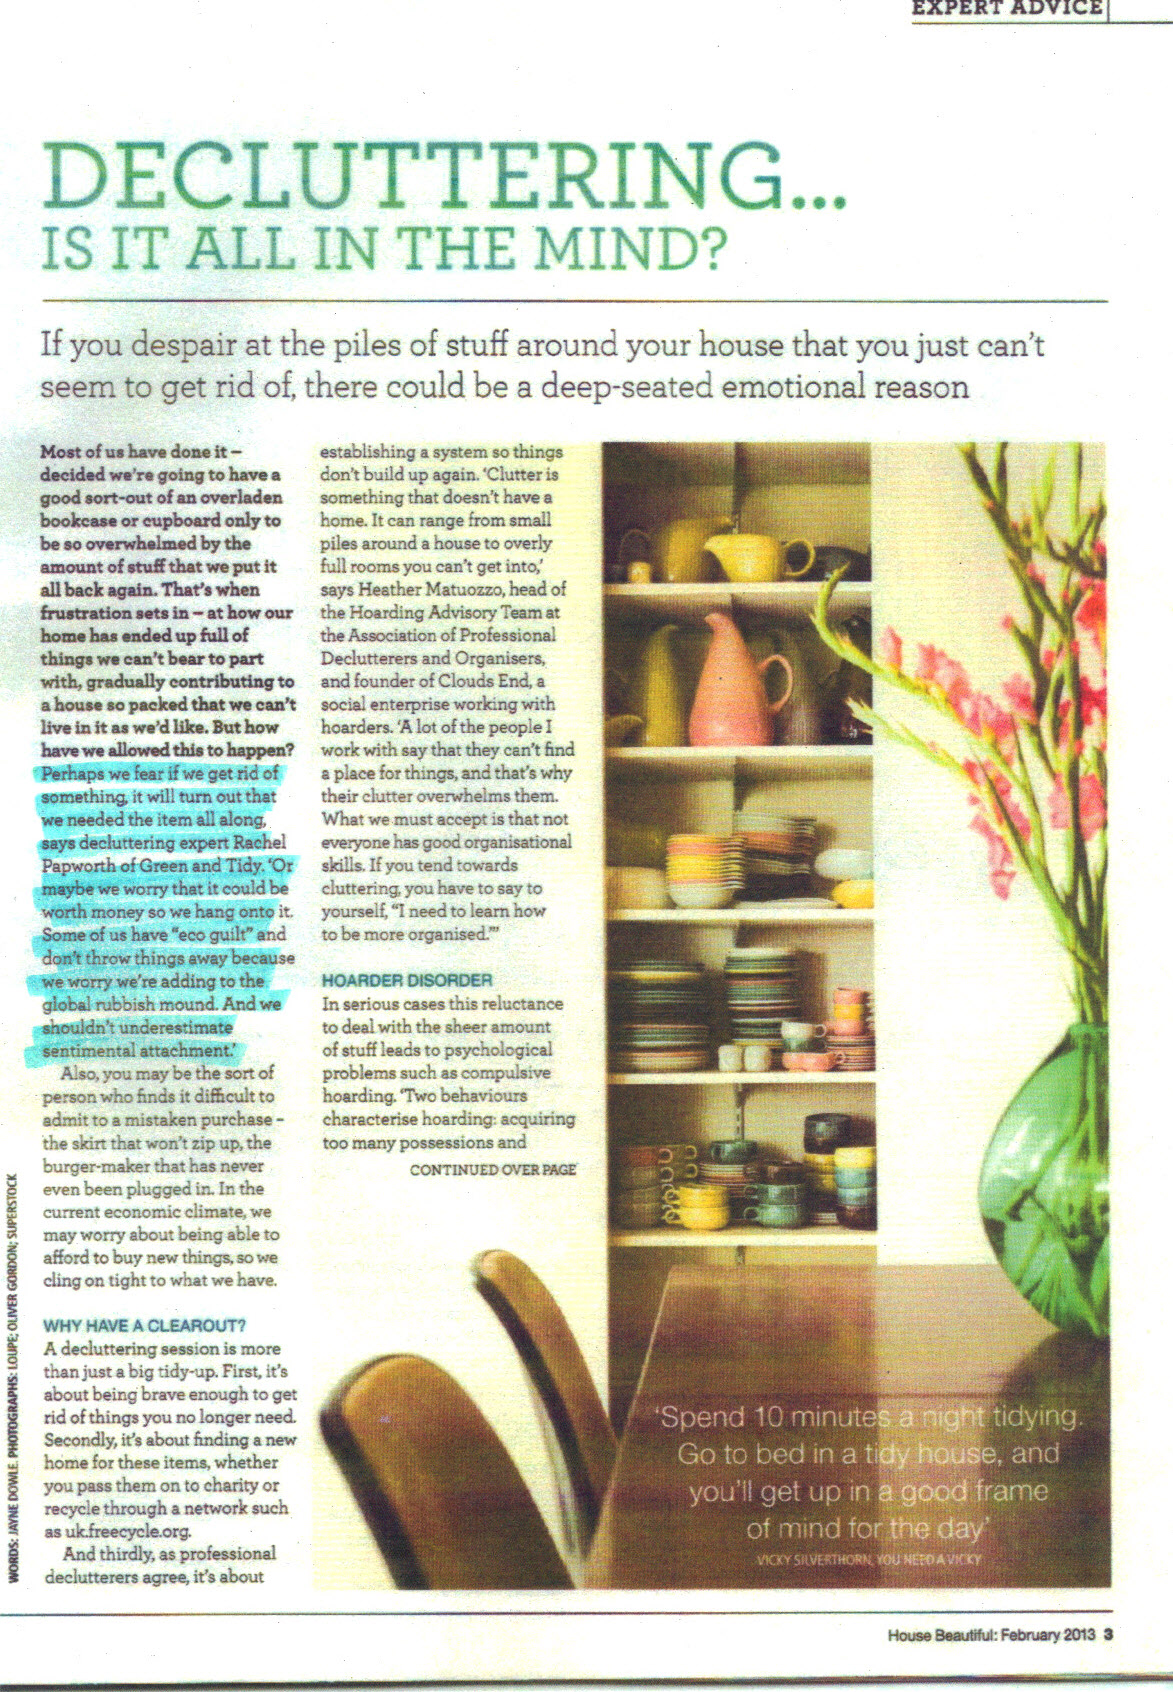 House Beautiful Feb 2013 p3 -  highlight